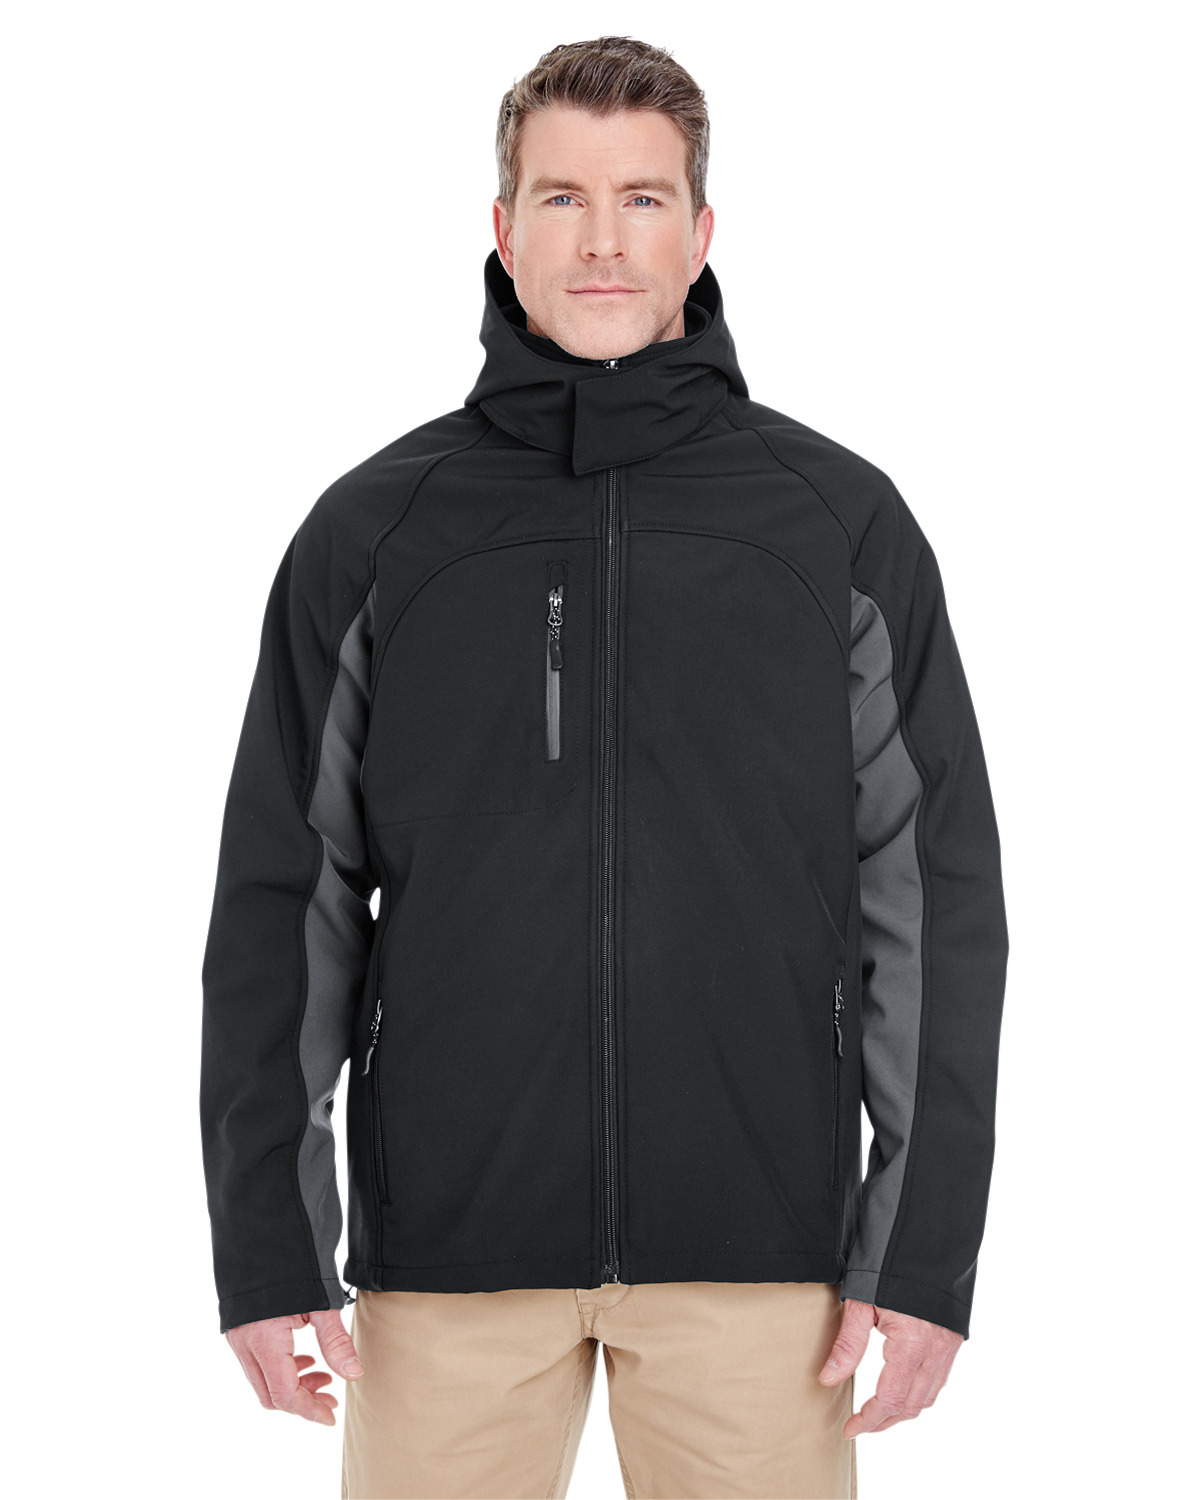 Adult Colorblock 3-in-1 Systems Hooded Soft Shell Jacket